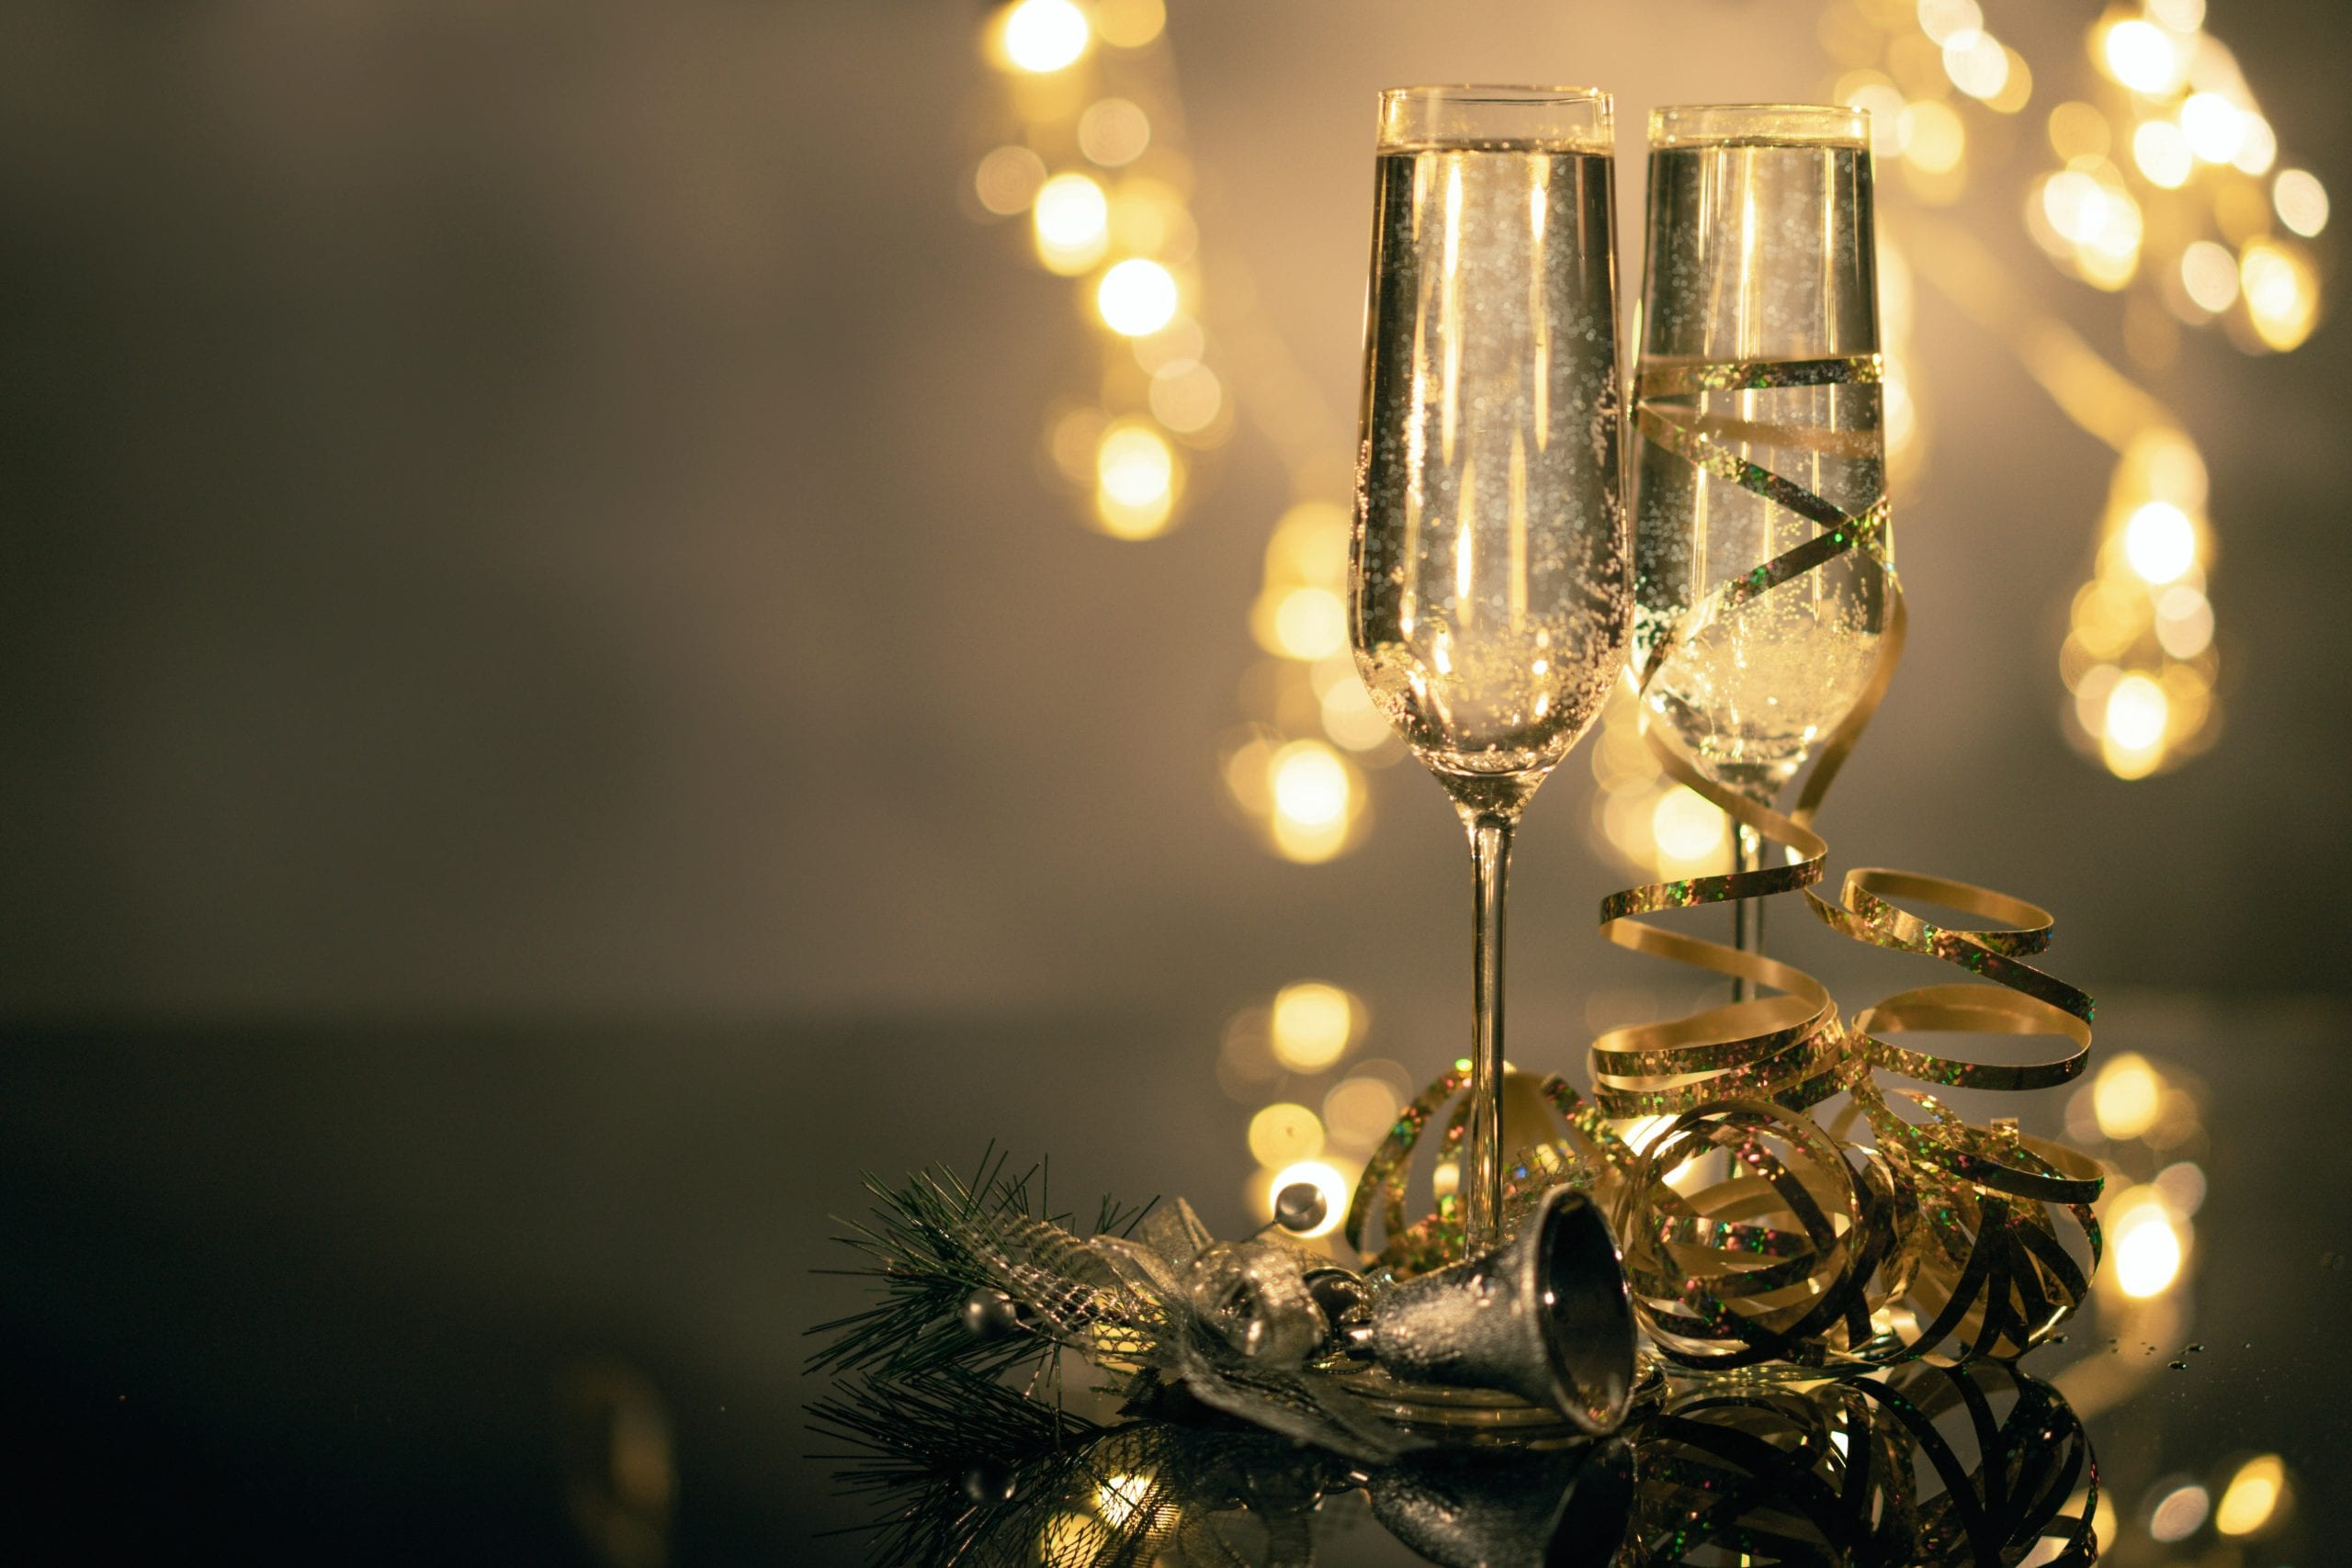 Champagne flutes are narrow to preserve the bubbles for longer.